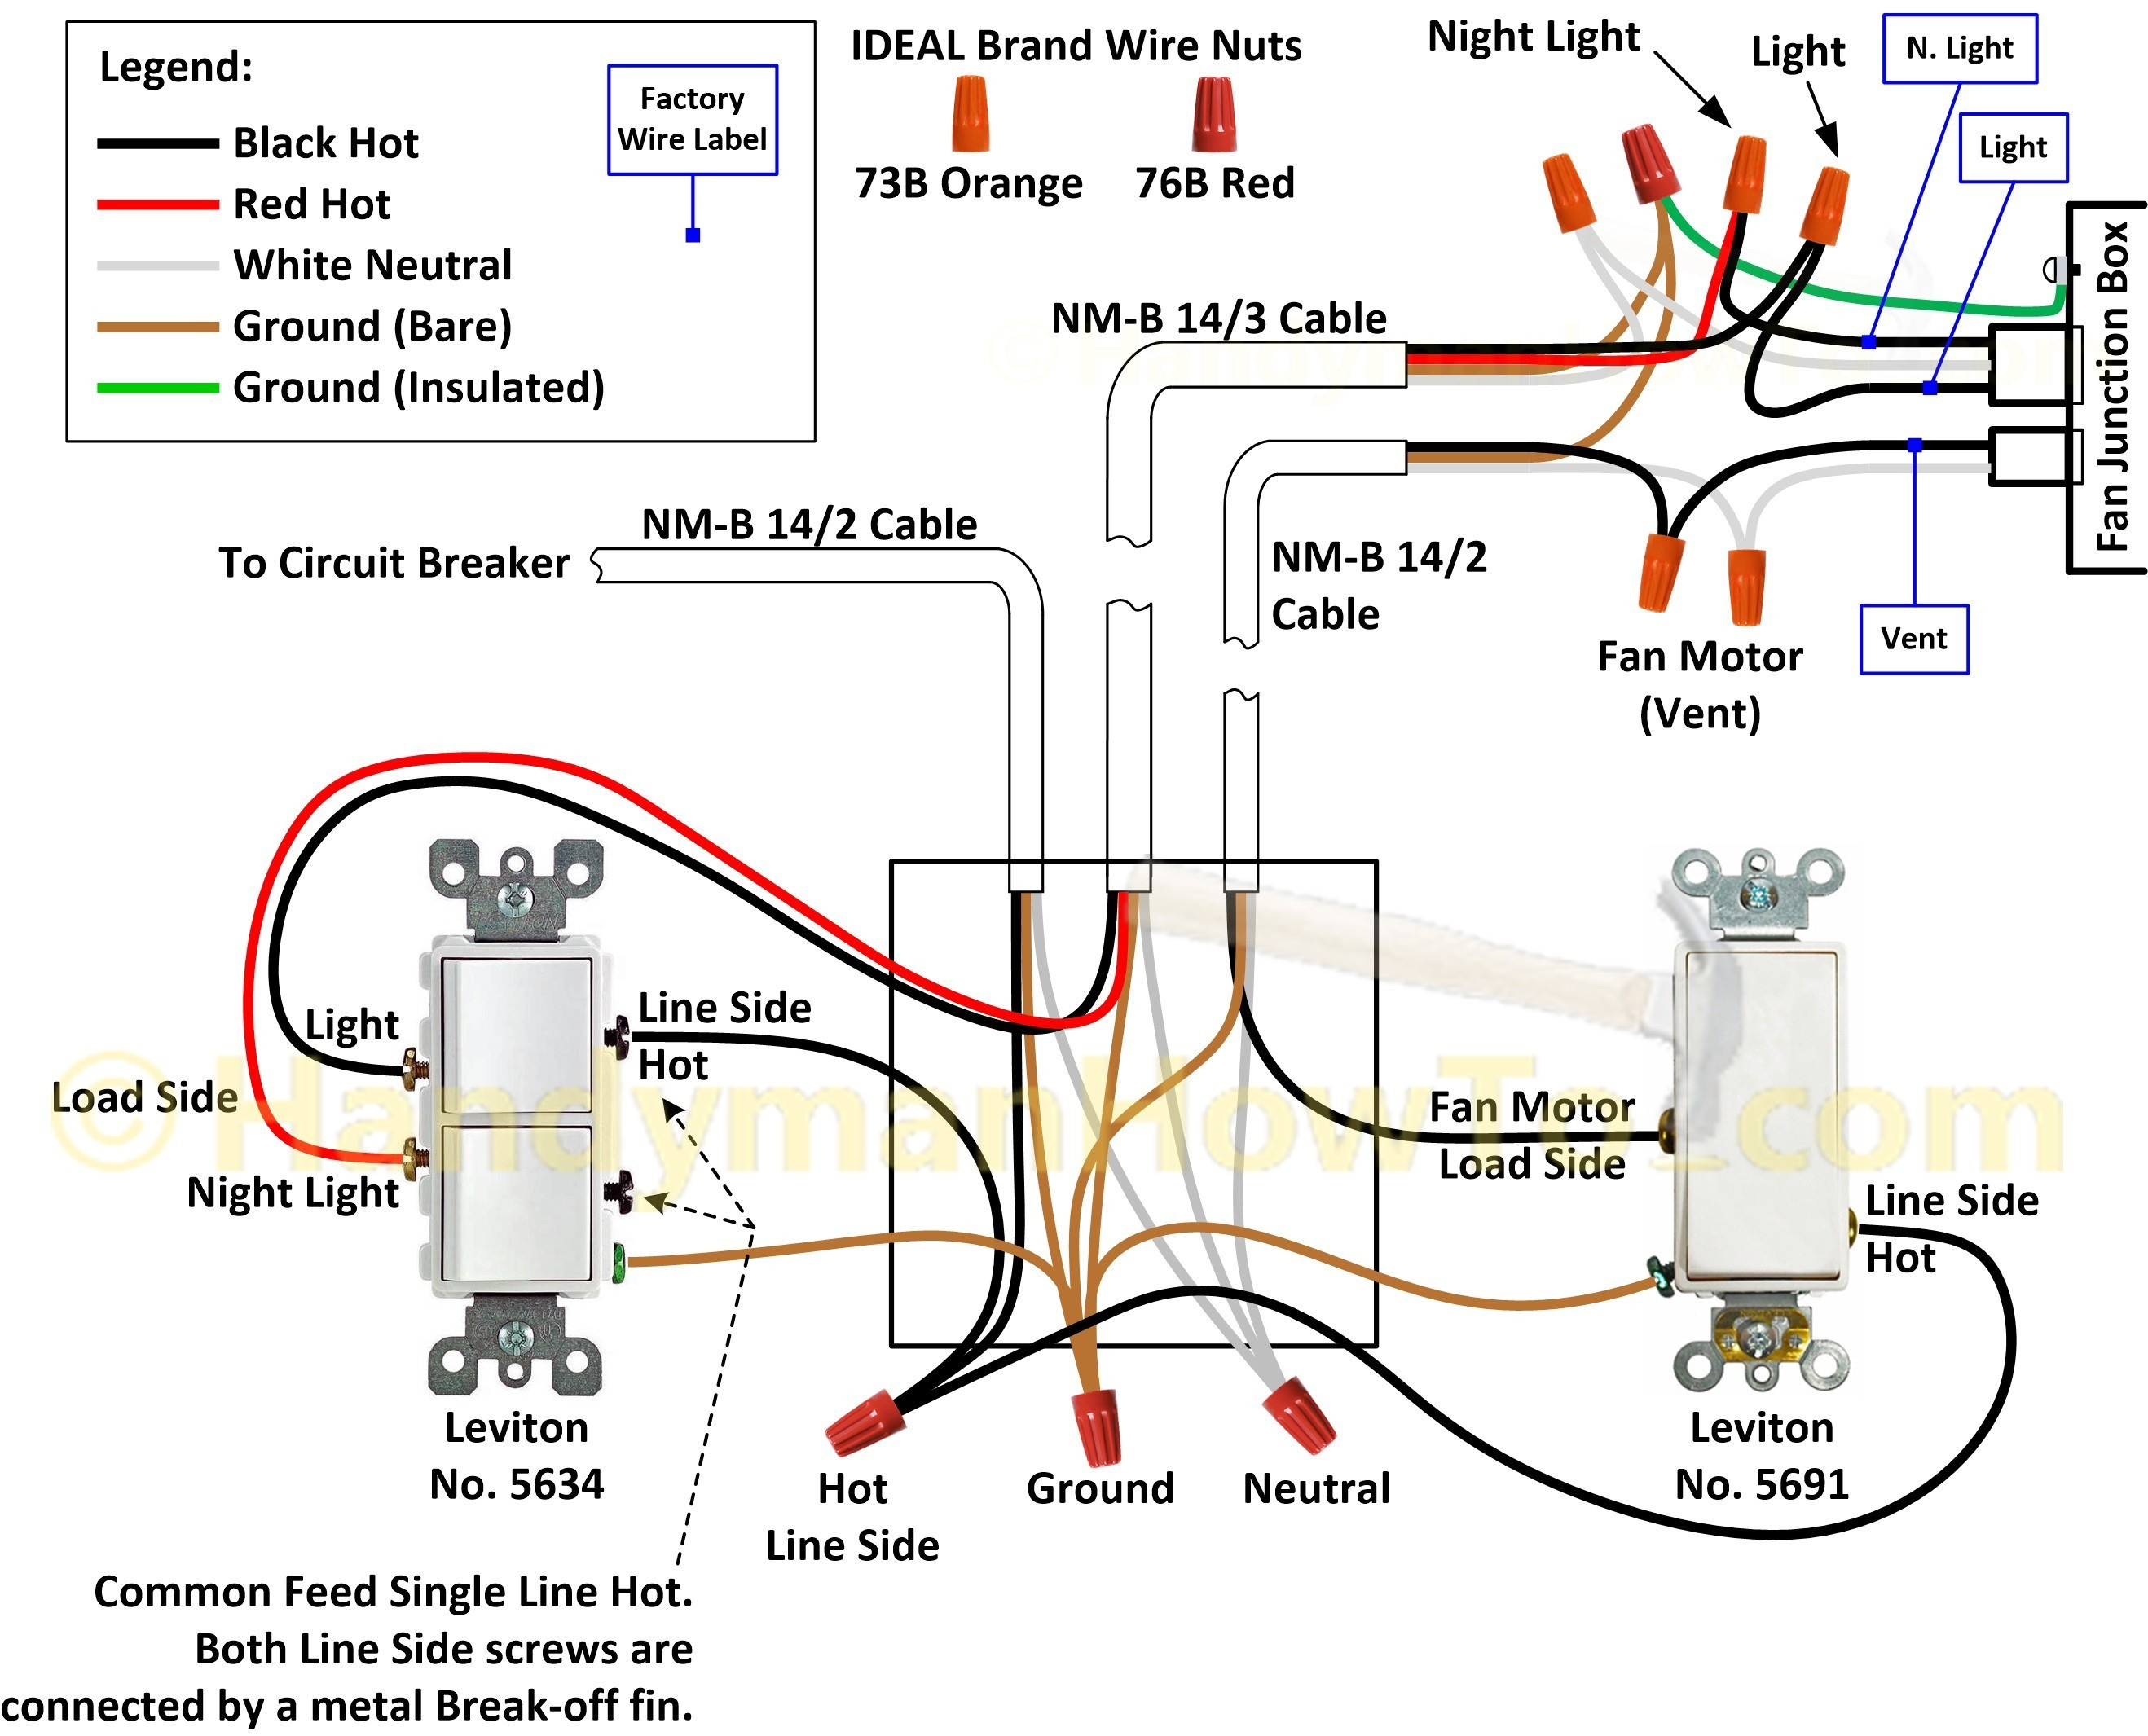 Wiring Diagram For 3 Way Switches Multiple Lights Fresh 4 Way Switch Wiring Diagrams Inspirational How To Wire A Light With